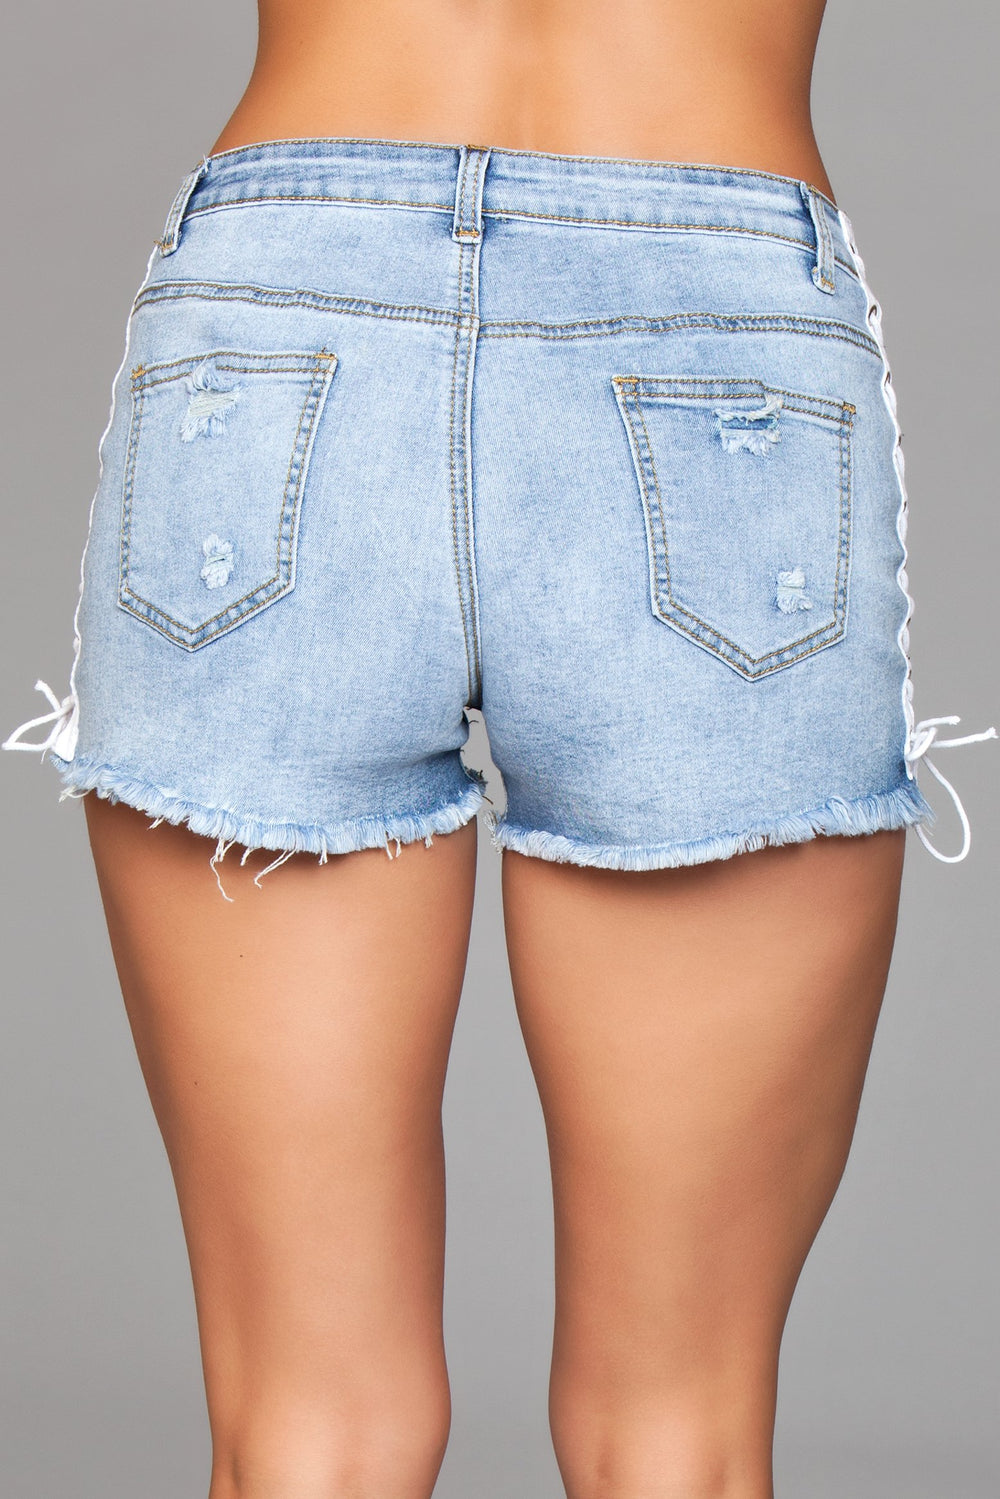 J6BL Double Up Shorts - Light Wash